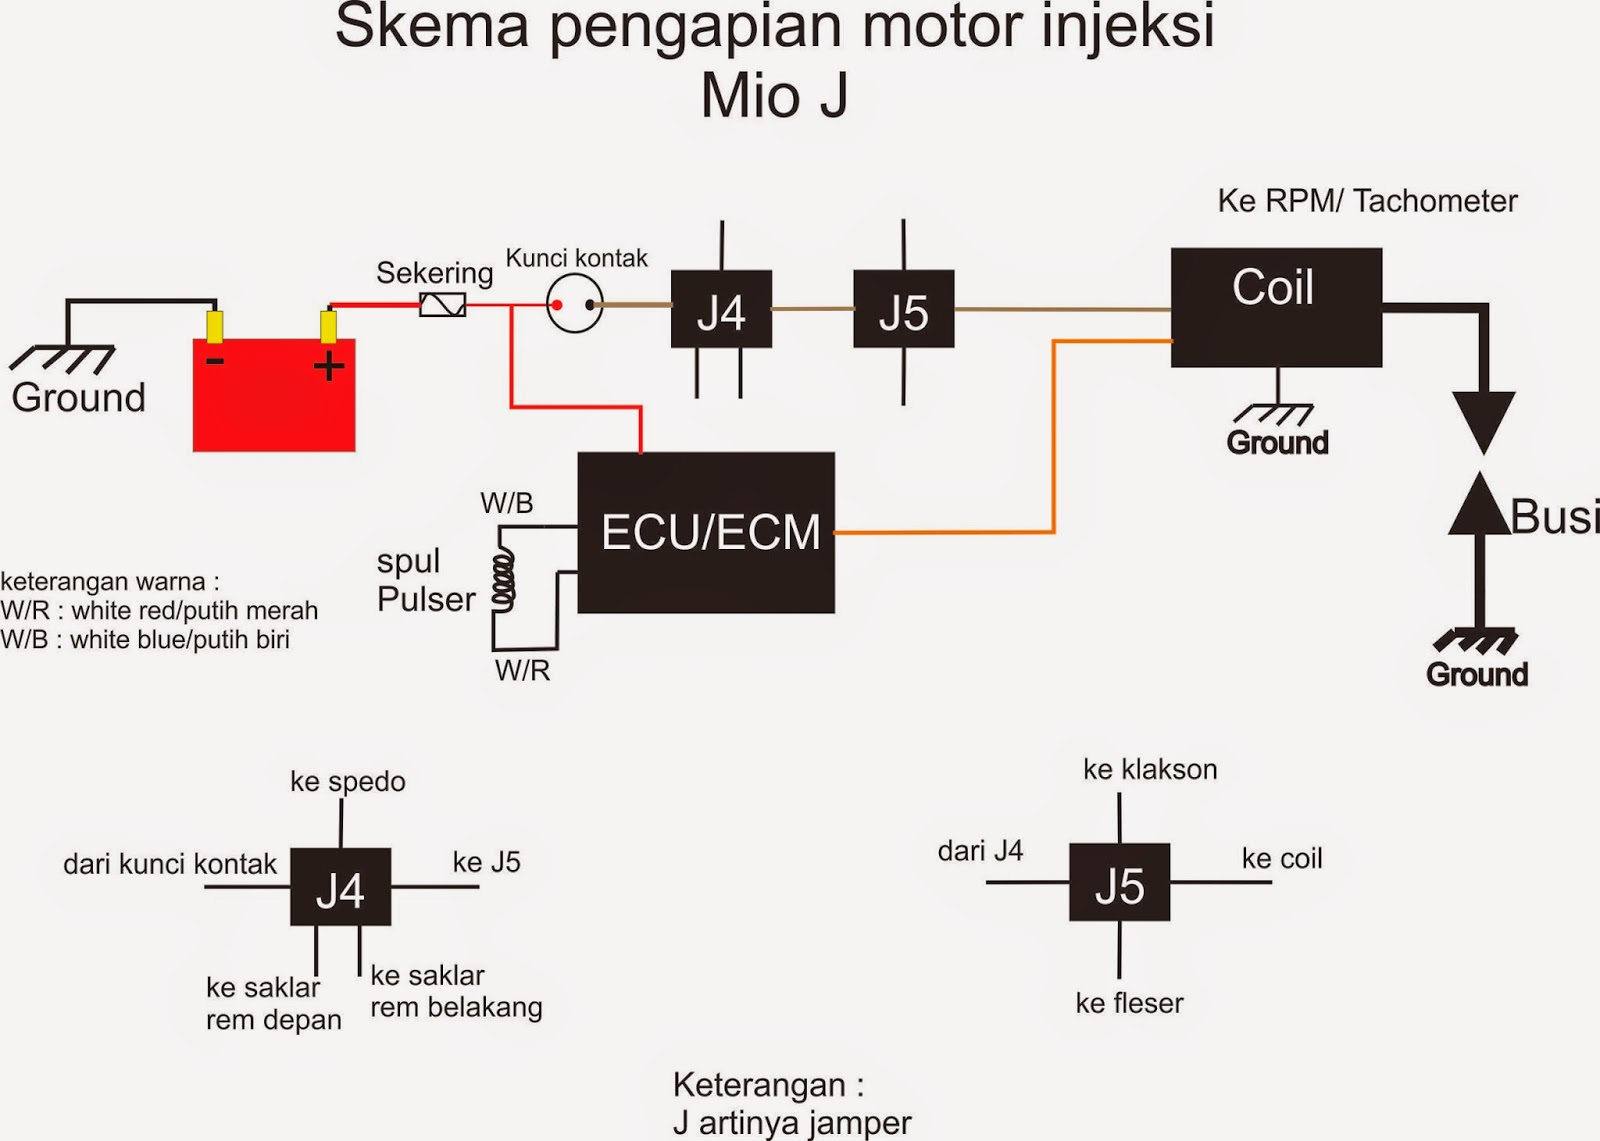 mio soul wiring diagram mio image wiring diagram wiring diagram motor yamaha mio images on mio soul wiring diagram